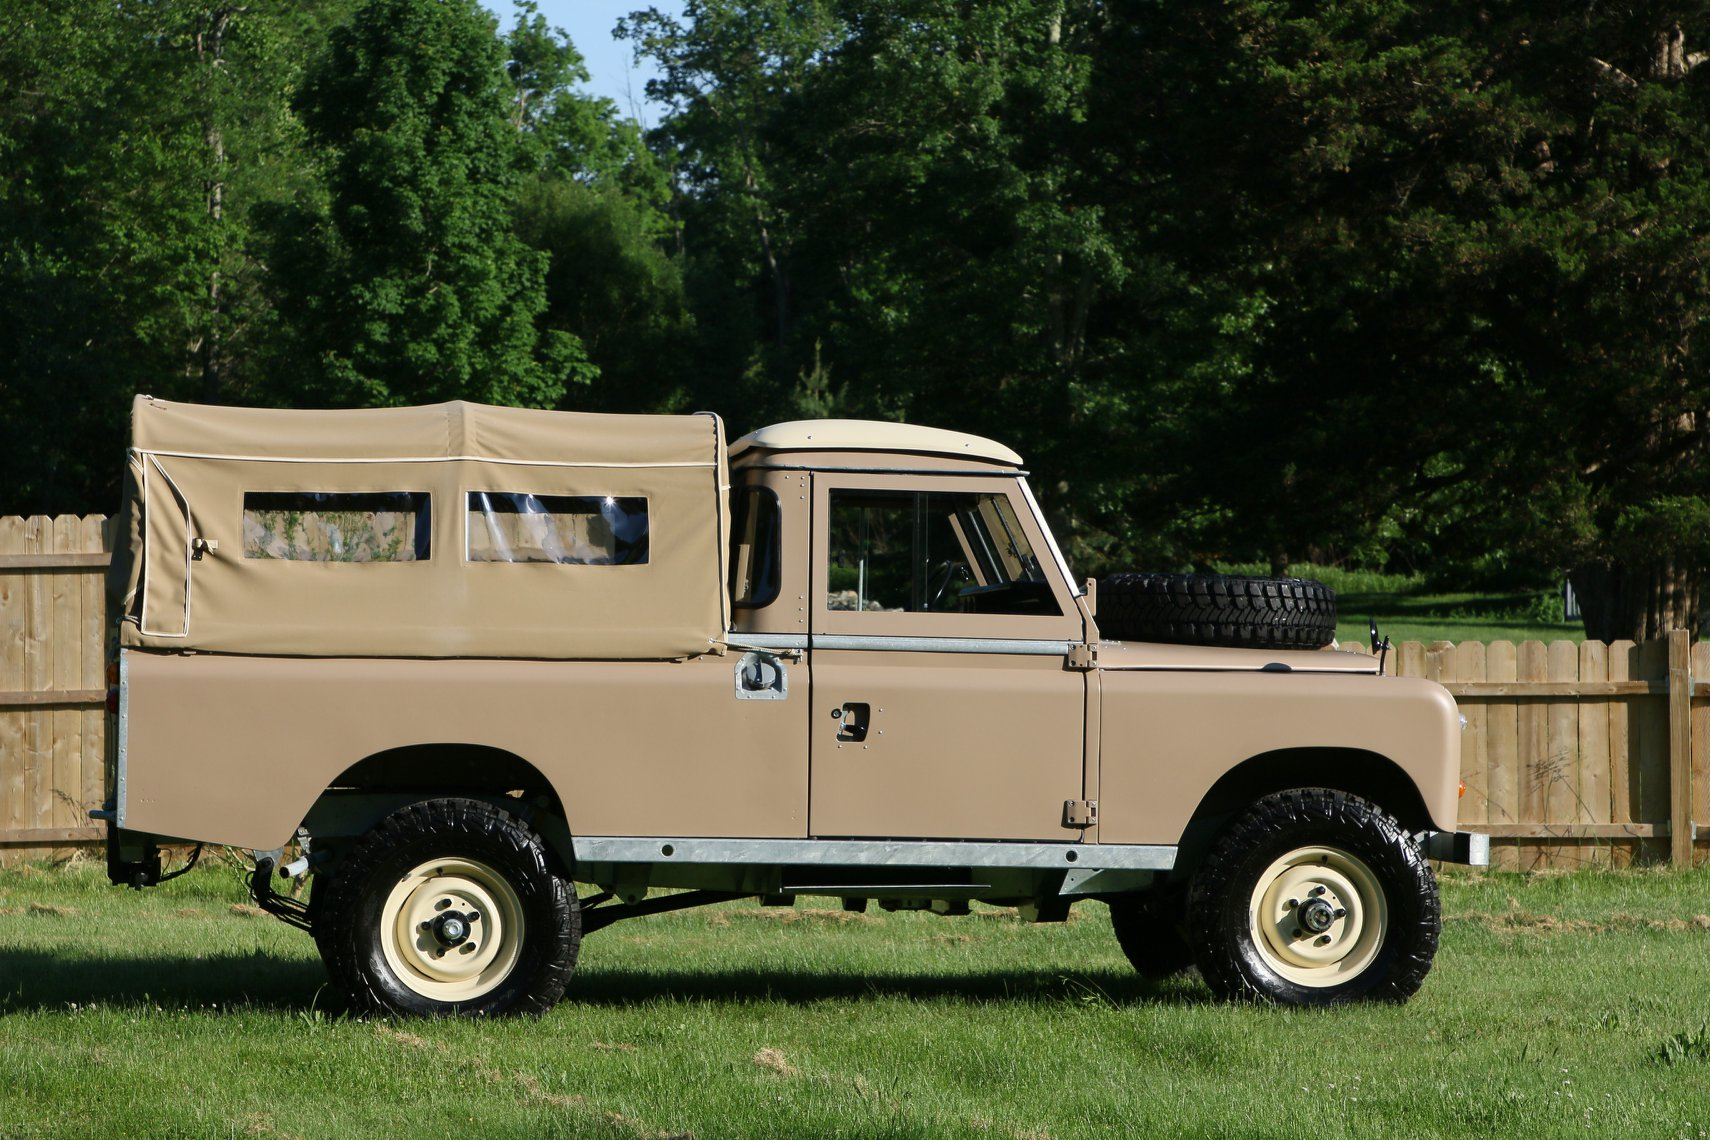 1972 Land Rover Series II 109 Inch Pickup Restoration Photo ao